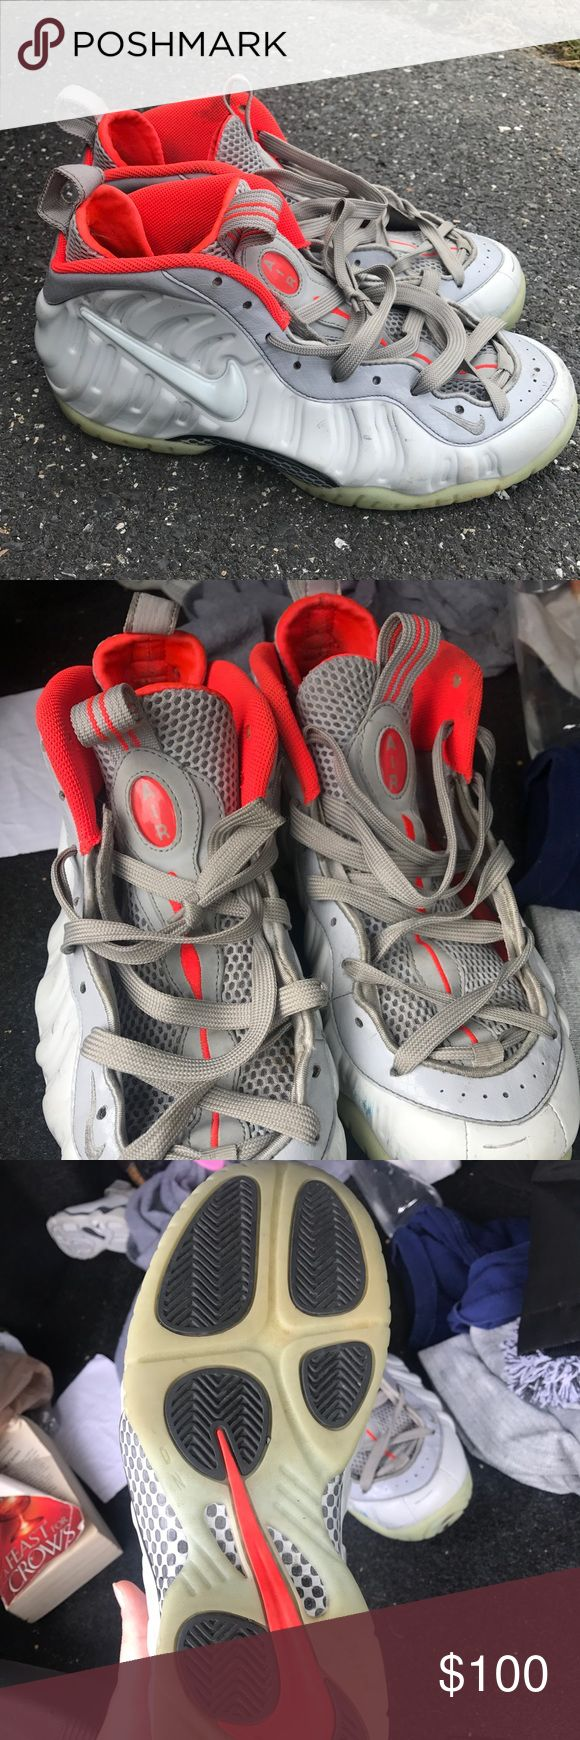 """Foamposites Foamposite pro """"pure platinum"""" Orange and grey foams that glow in the dark. Pre loved and price reflects that but still probably 7/10 condition. Fee free to ask questions. First picture is an actual picture outside in natural lighting with no filter. Nike Shoes Sneakers"""